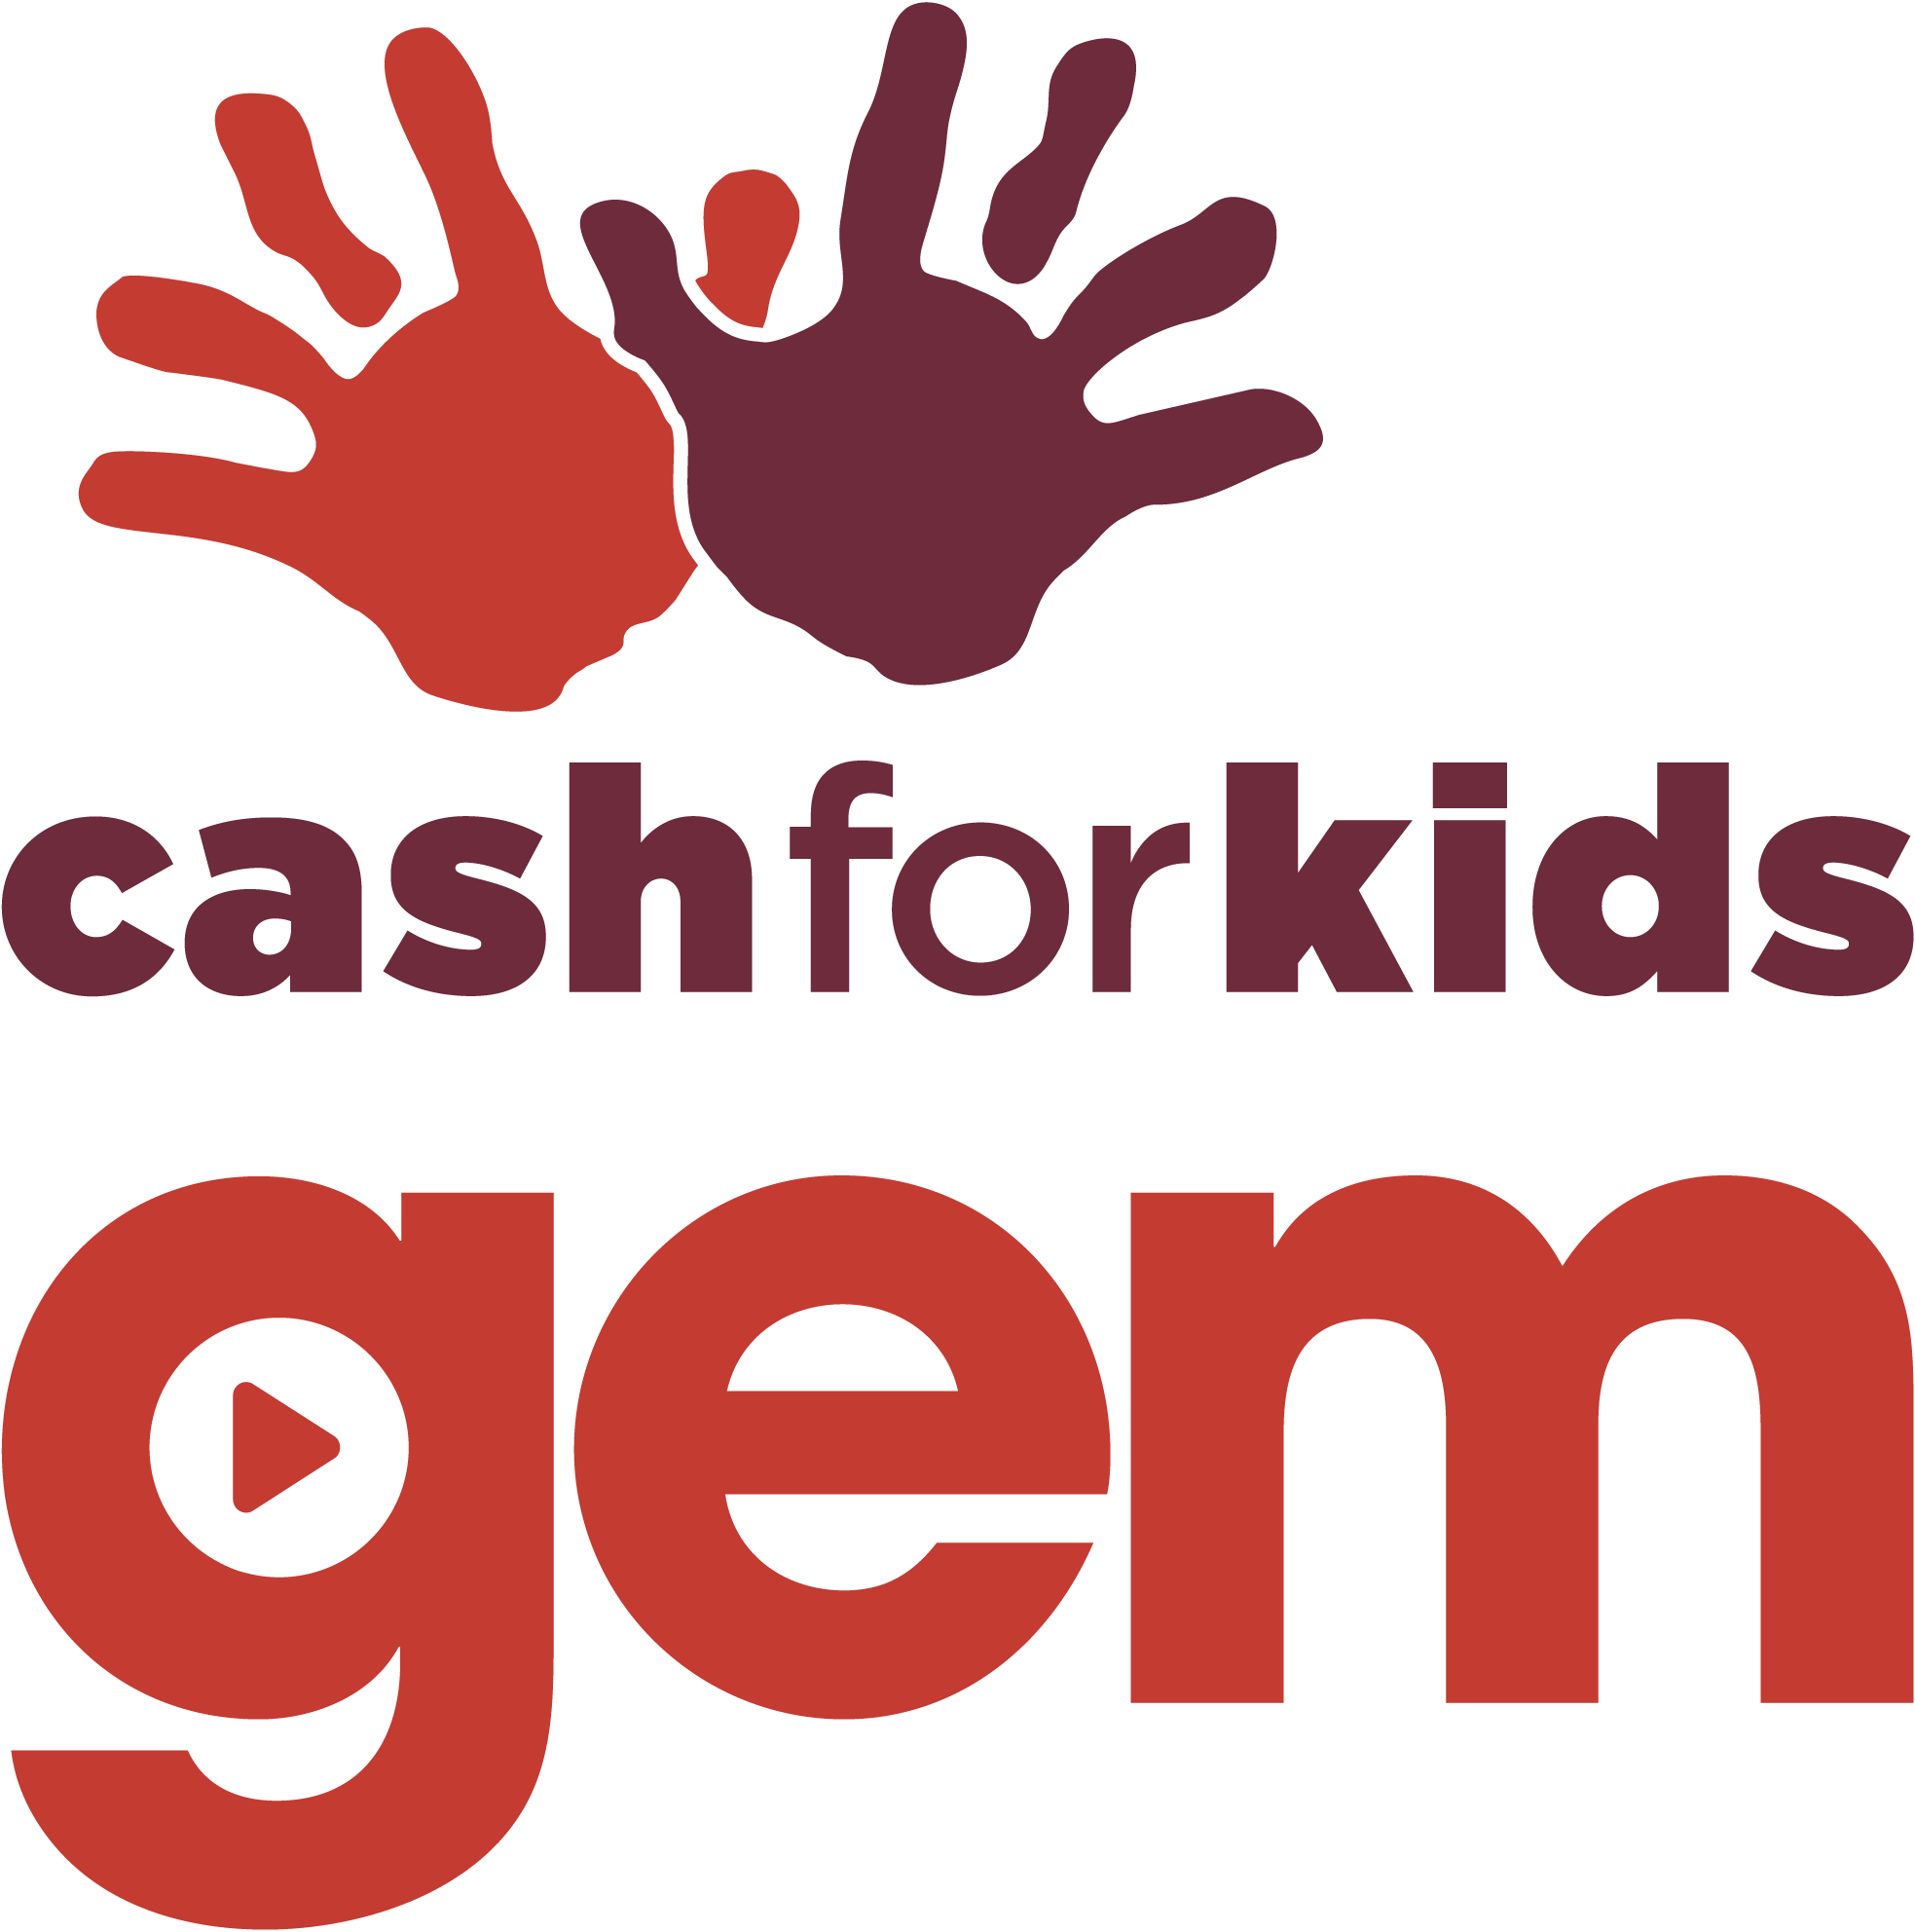 Gem Cash for Kids logo